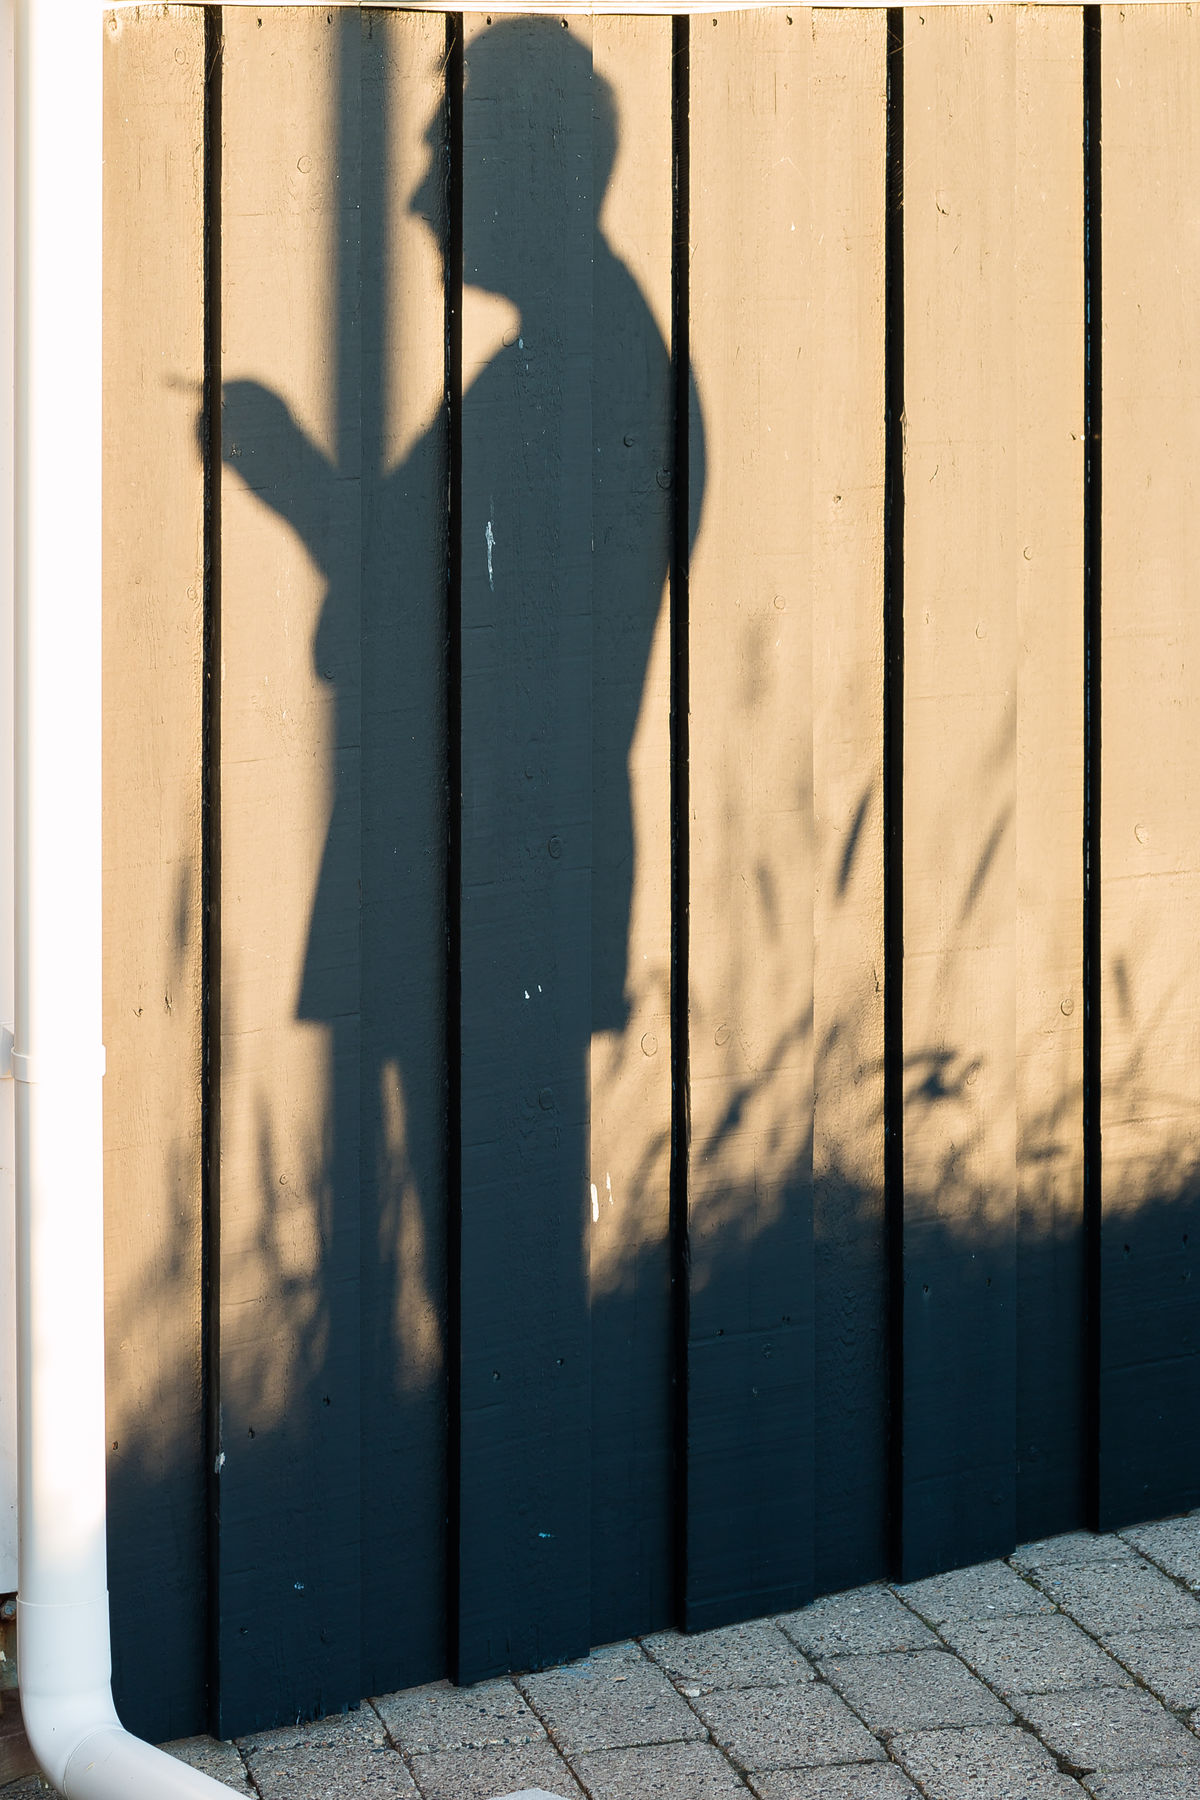 Summerday memories. A Shadow Of One's Former Self Close-up Day Down Spout Focus On Shadow Geradestehen Grass Human Body Part Human Hand Keep Calm Man Nusshain 04 17 One Person People Schatten Seiner Selbst Shadow Shadow Of A Man Standing Sunlight Take The Responsibility TCPM Vor Einer Wand Stehen Wooden Fence